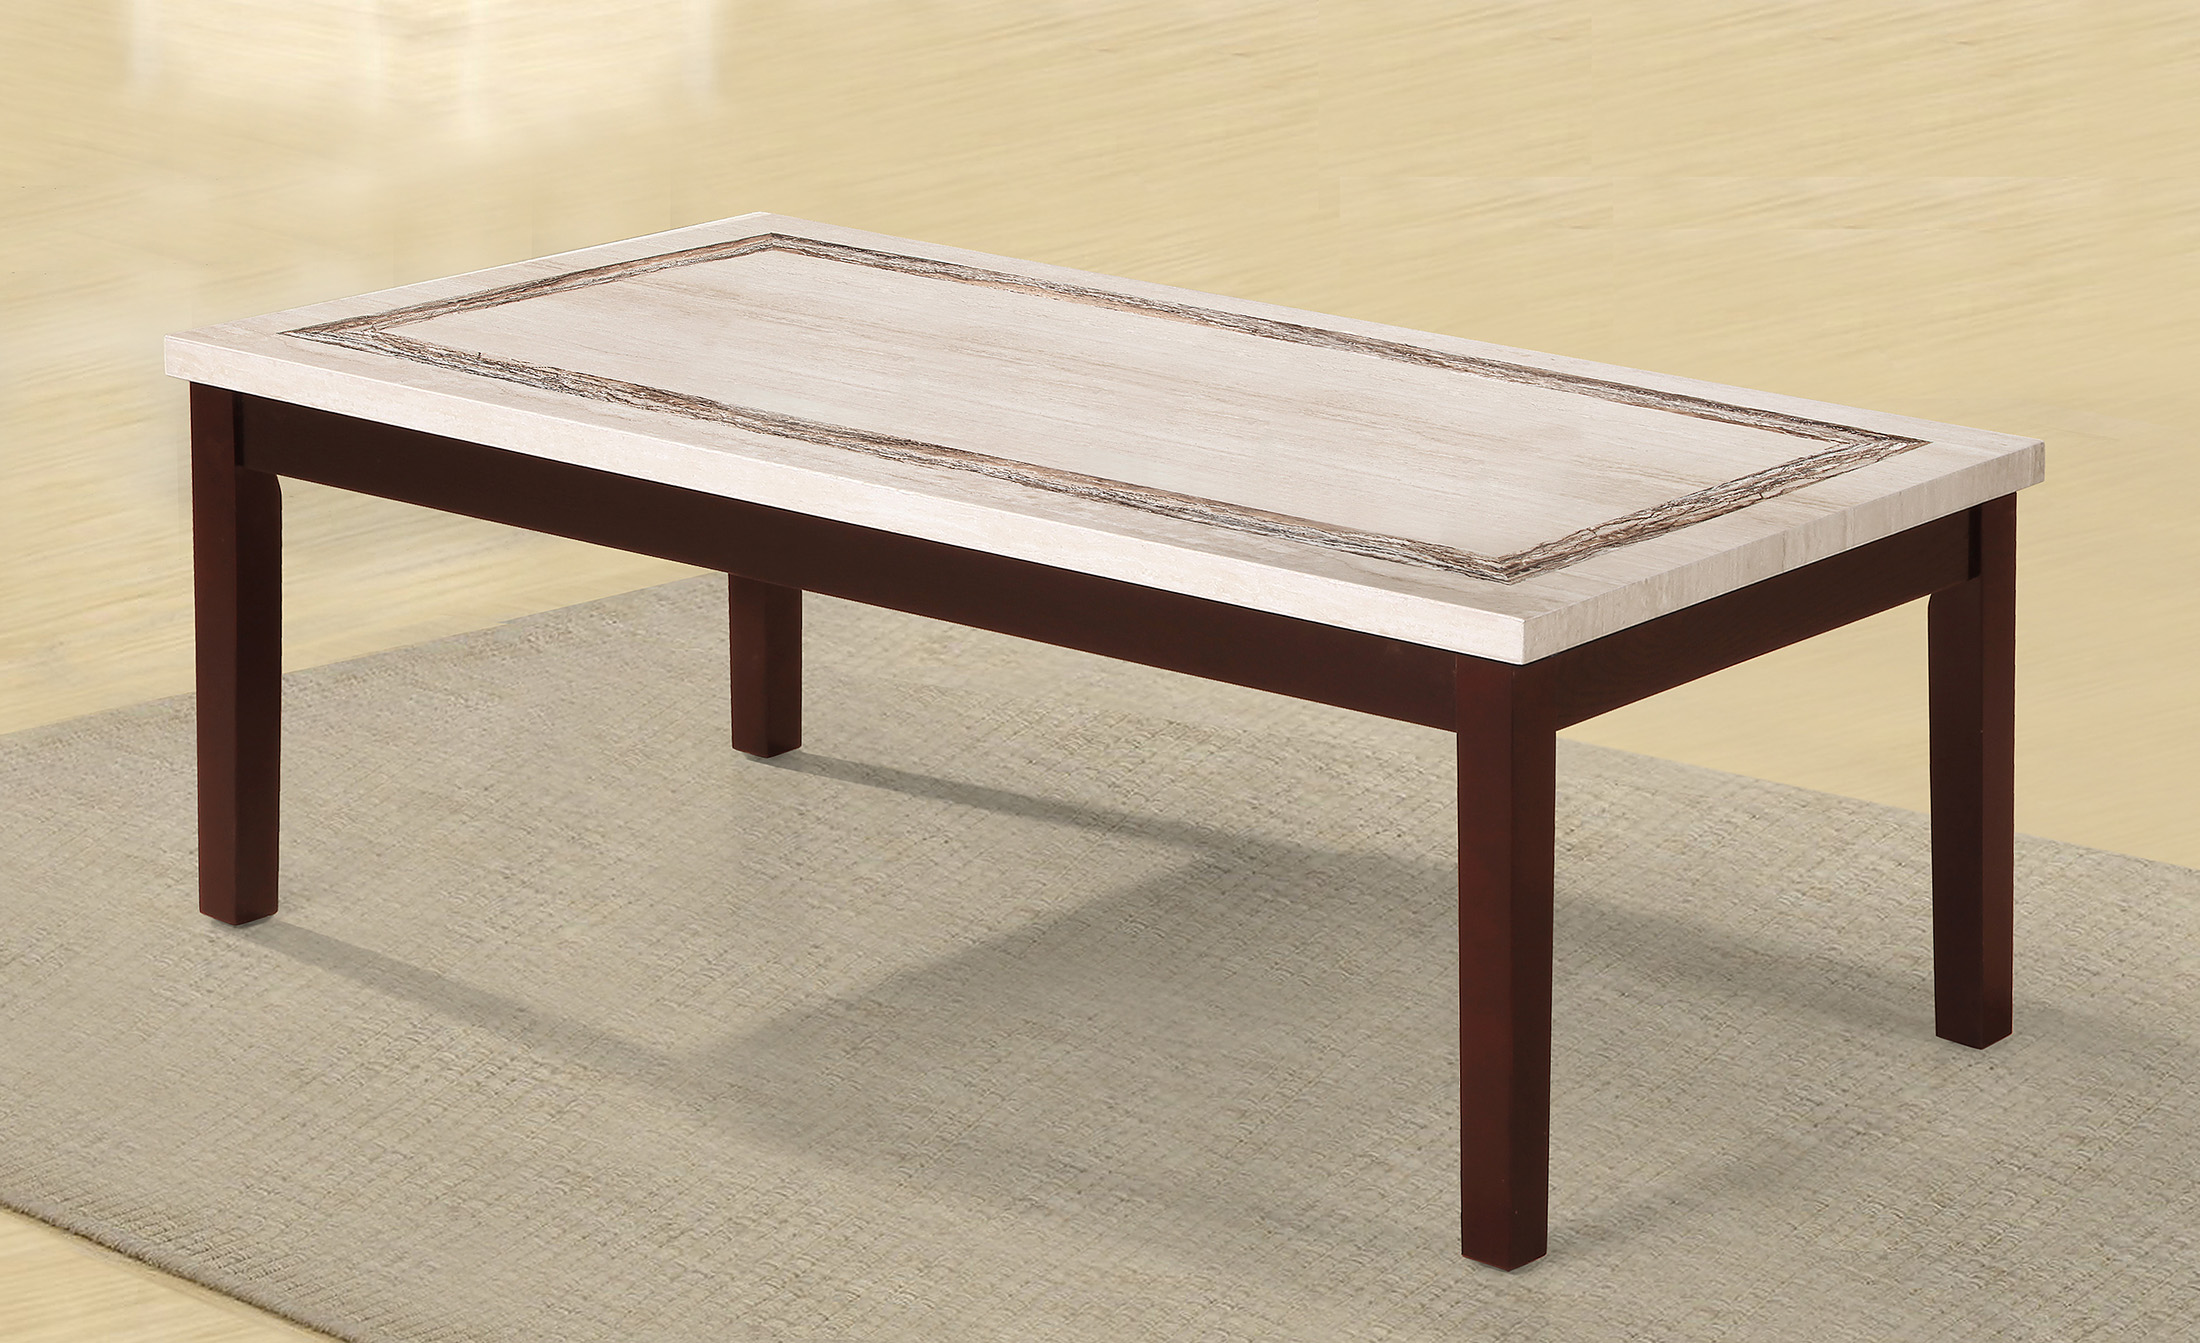 Faux Marbelized Granite Top Coffee Table